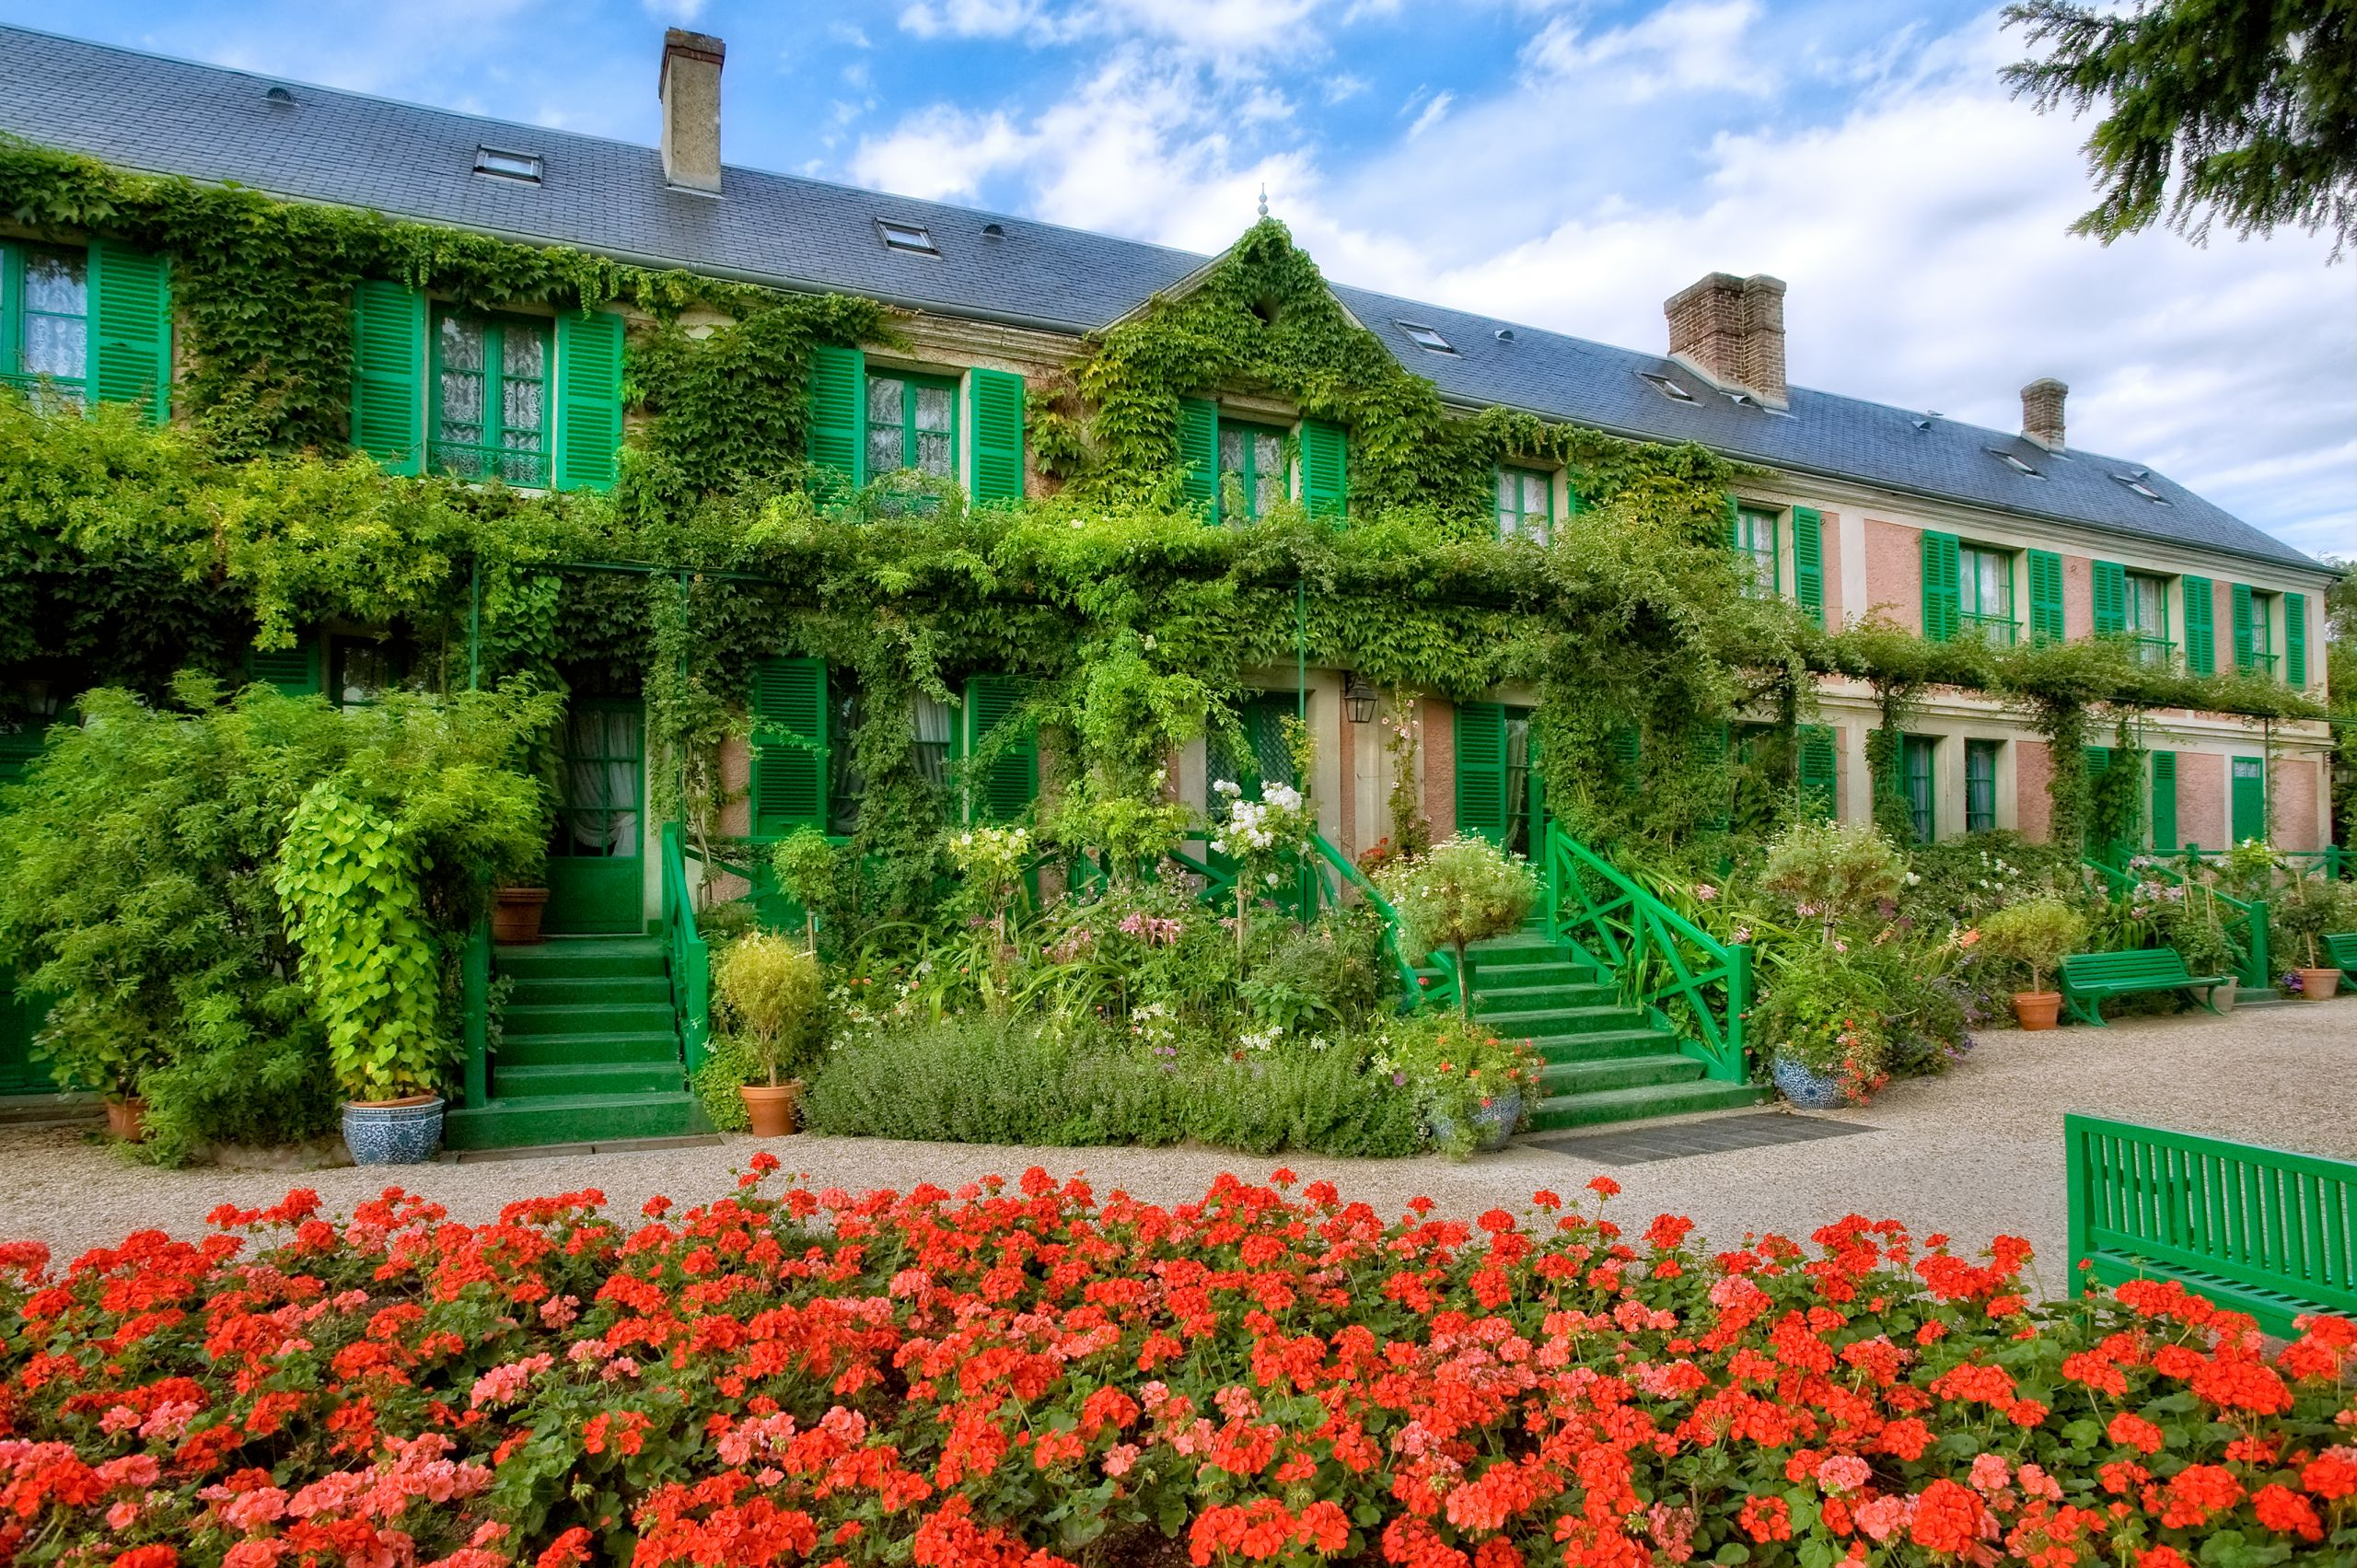 Art Et Jardin Best Of Fondation Monet In Giverny Of 56 Luxe Art Et Jardin